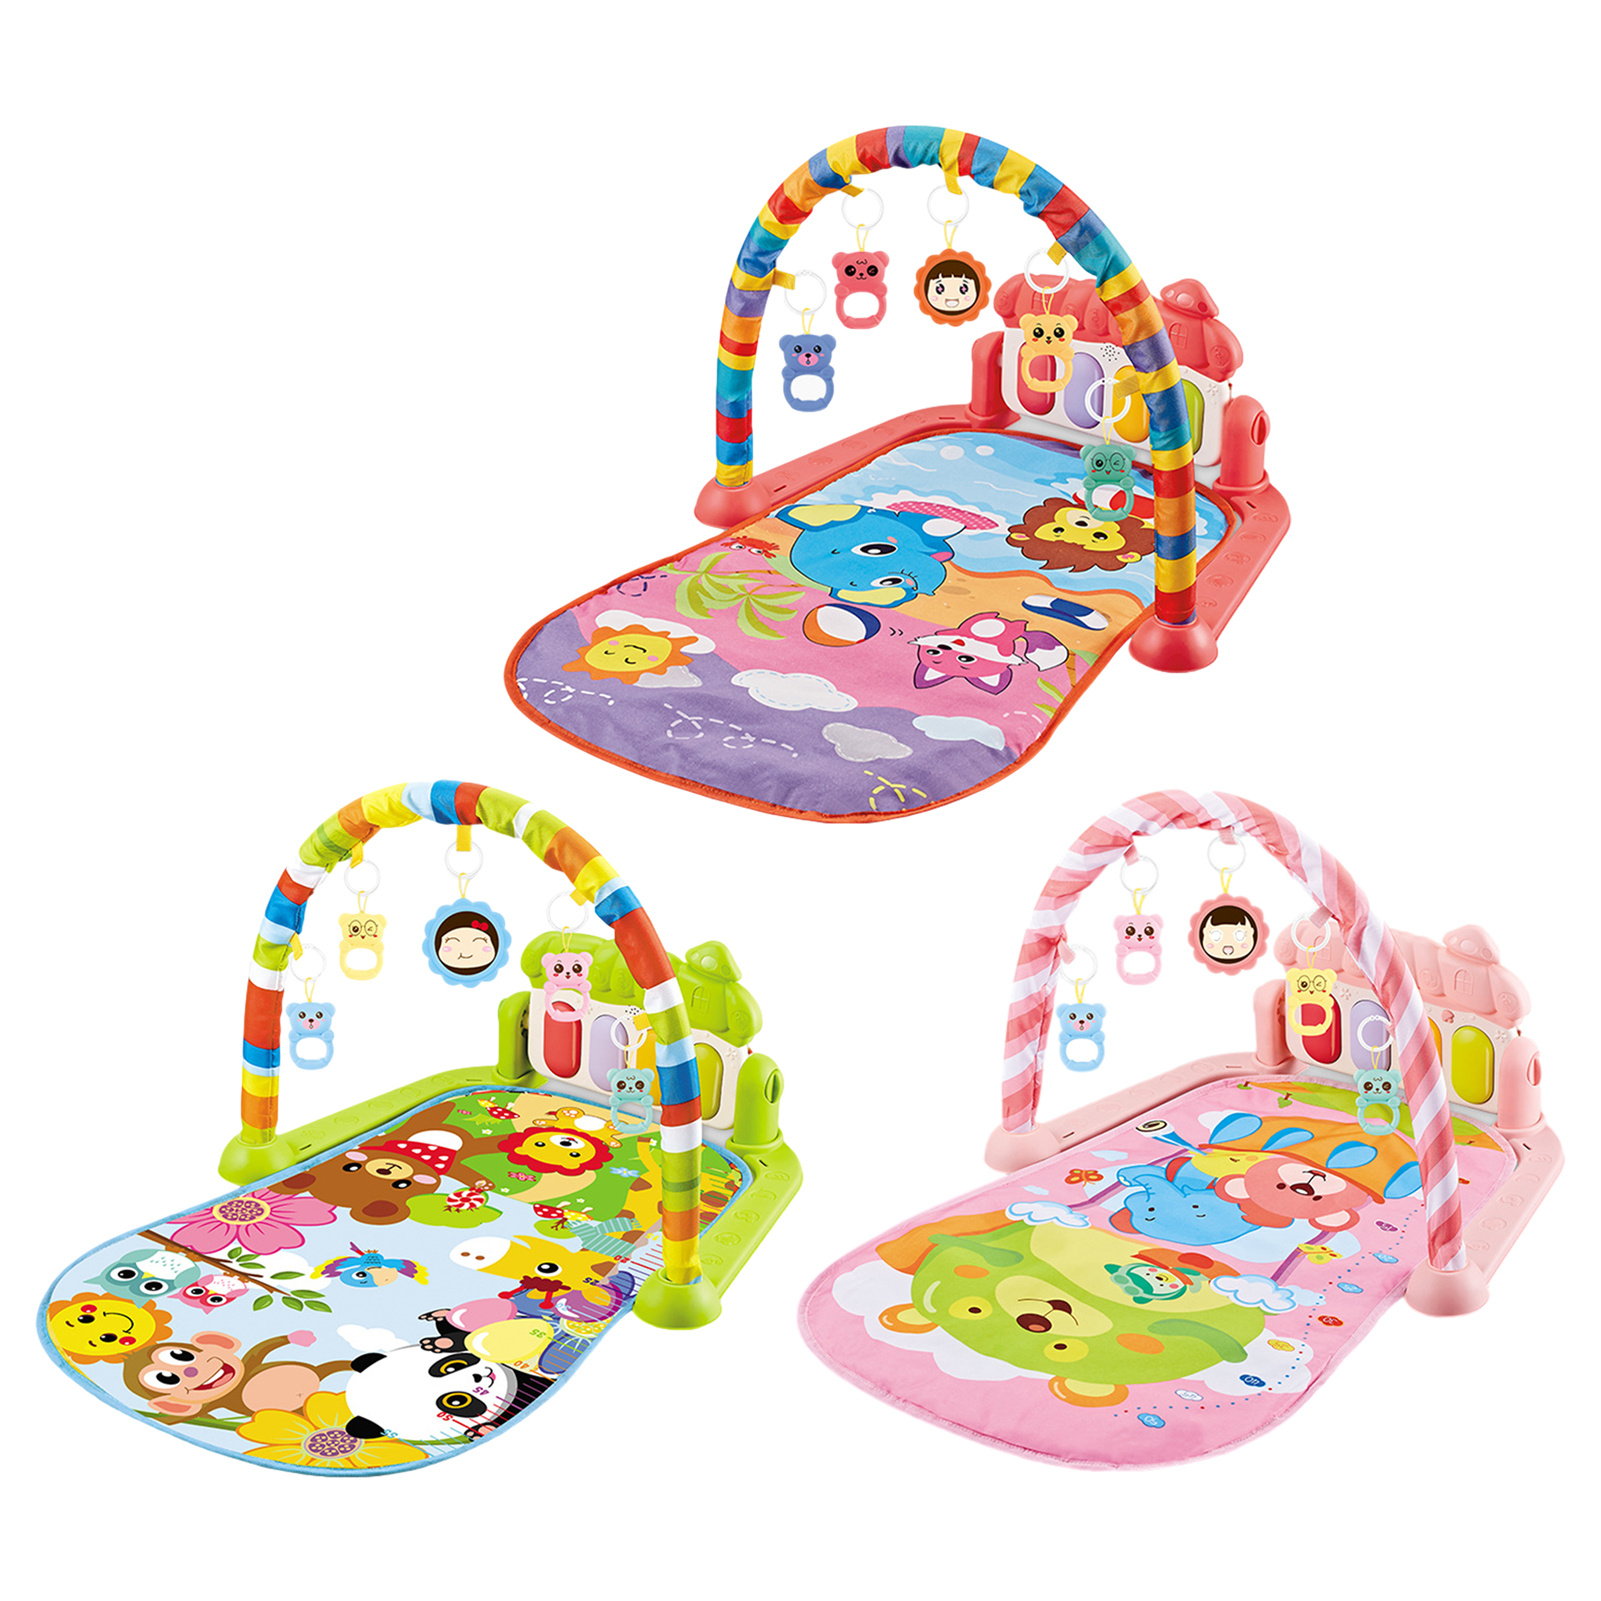 New Musical Baby Play Mat Play Piano Activity Gym With Hanging Toys Infant Playmat Early Education Gym Crawling Game Pad Toy